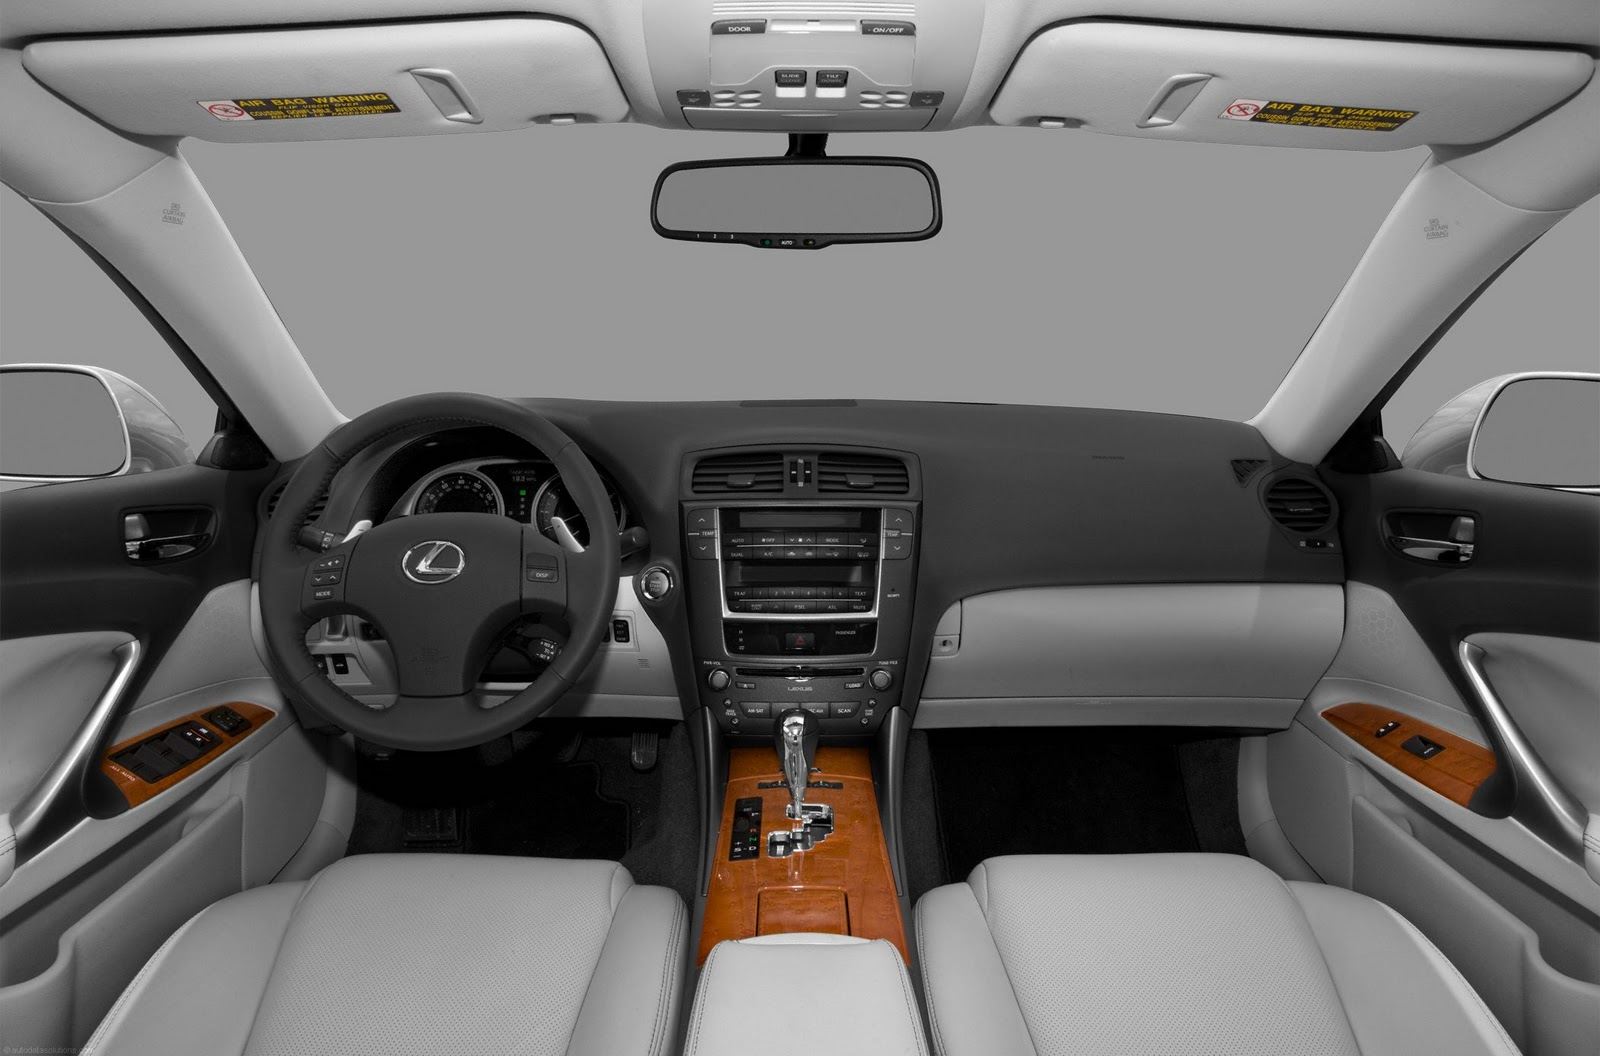 2011 Lexus IS 250 Interior